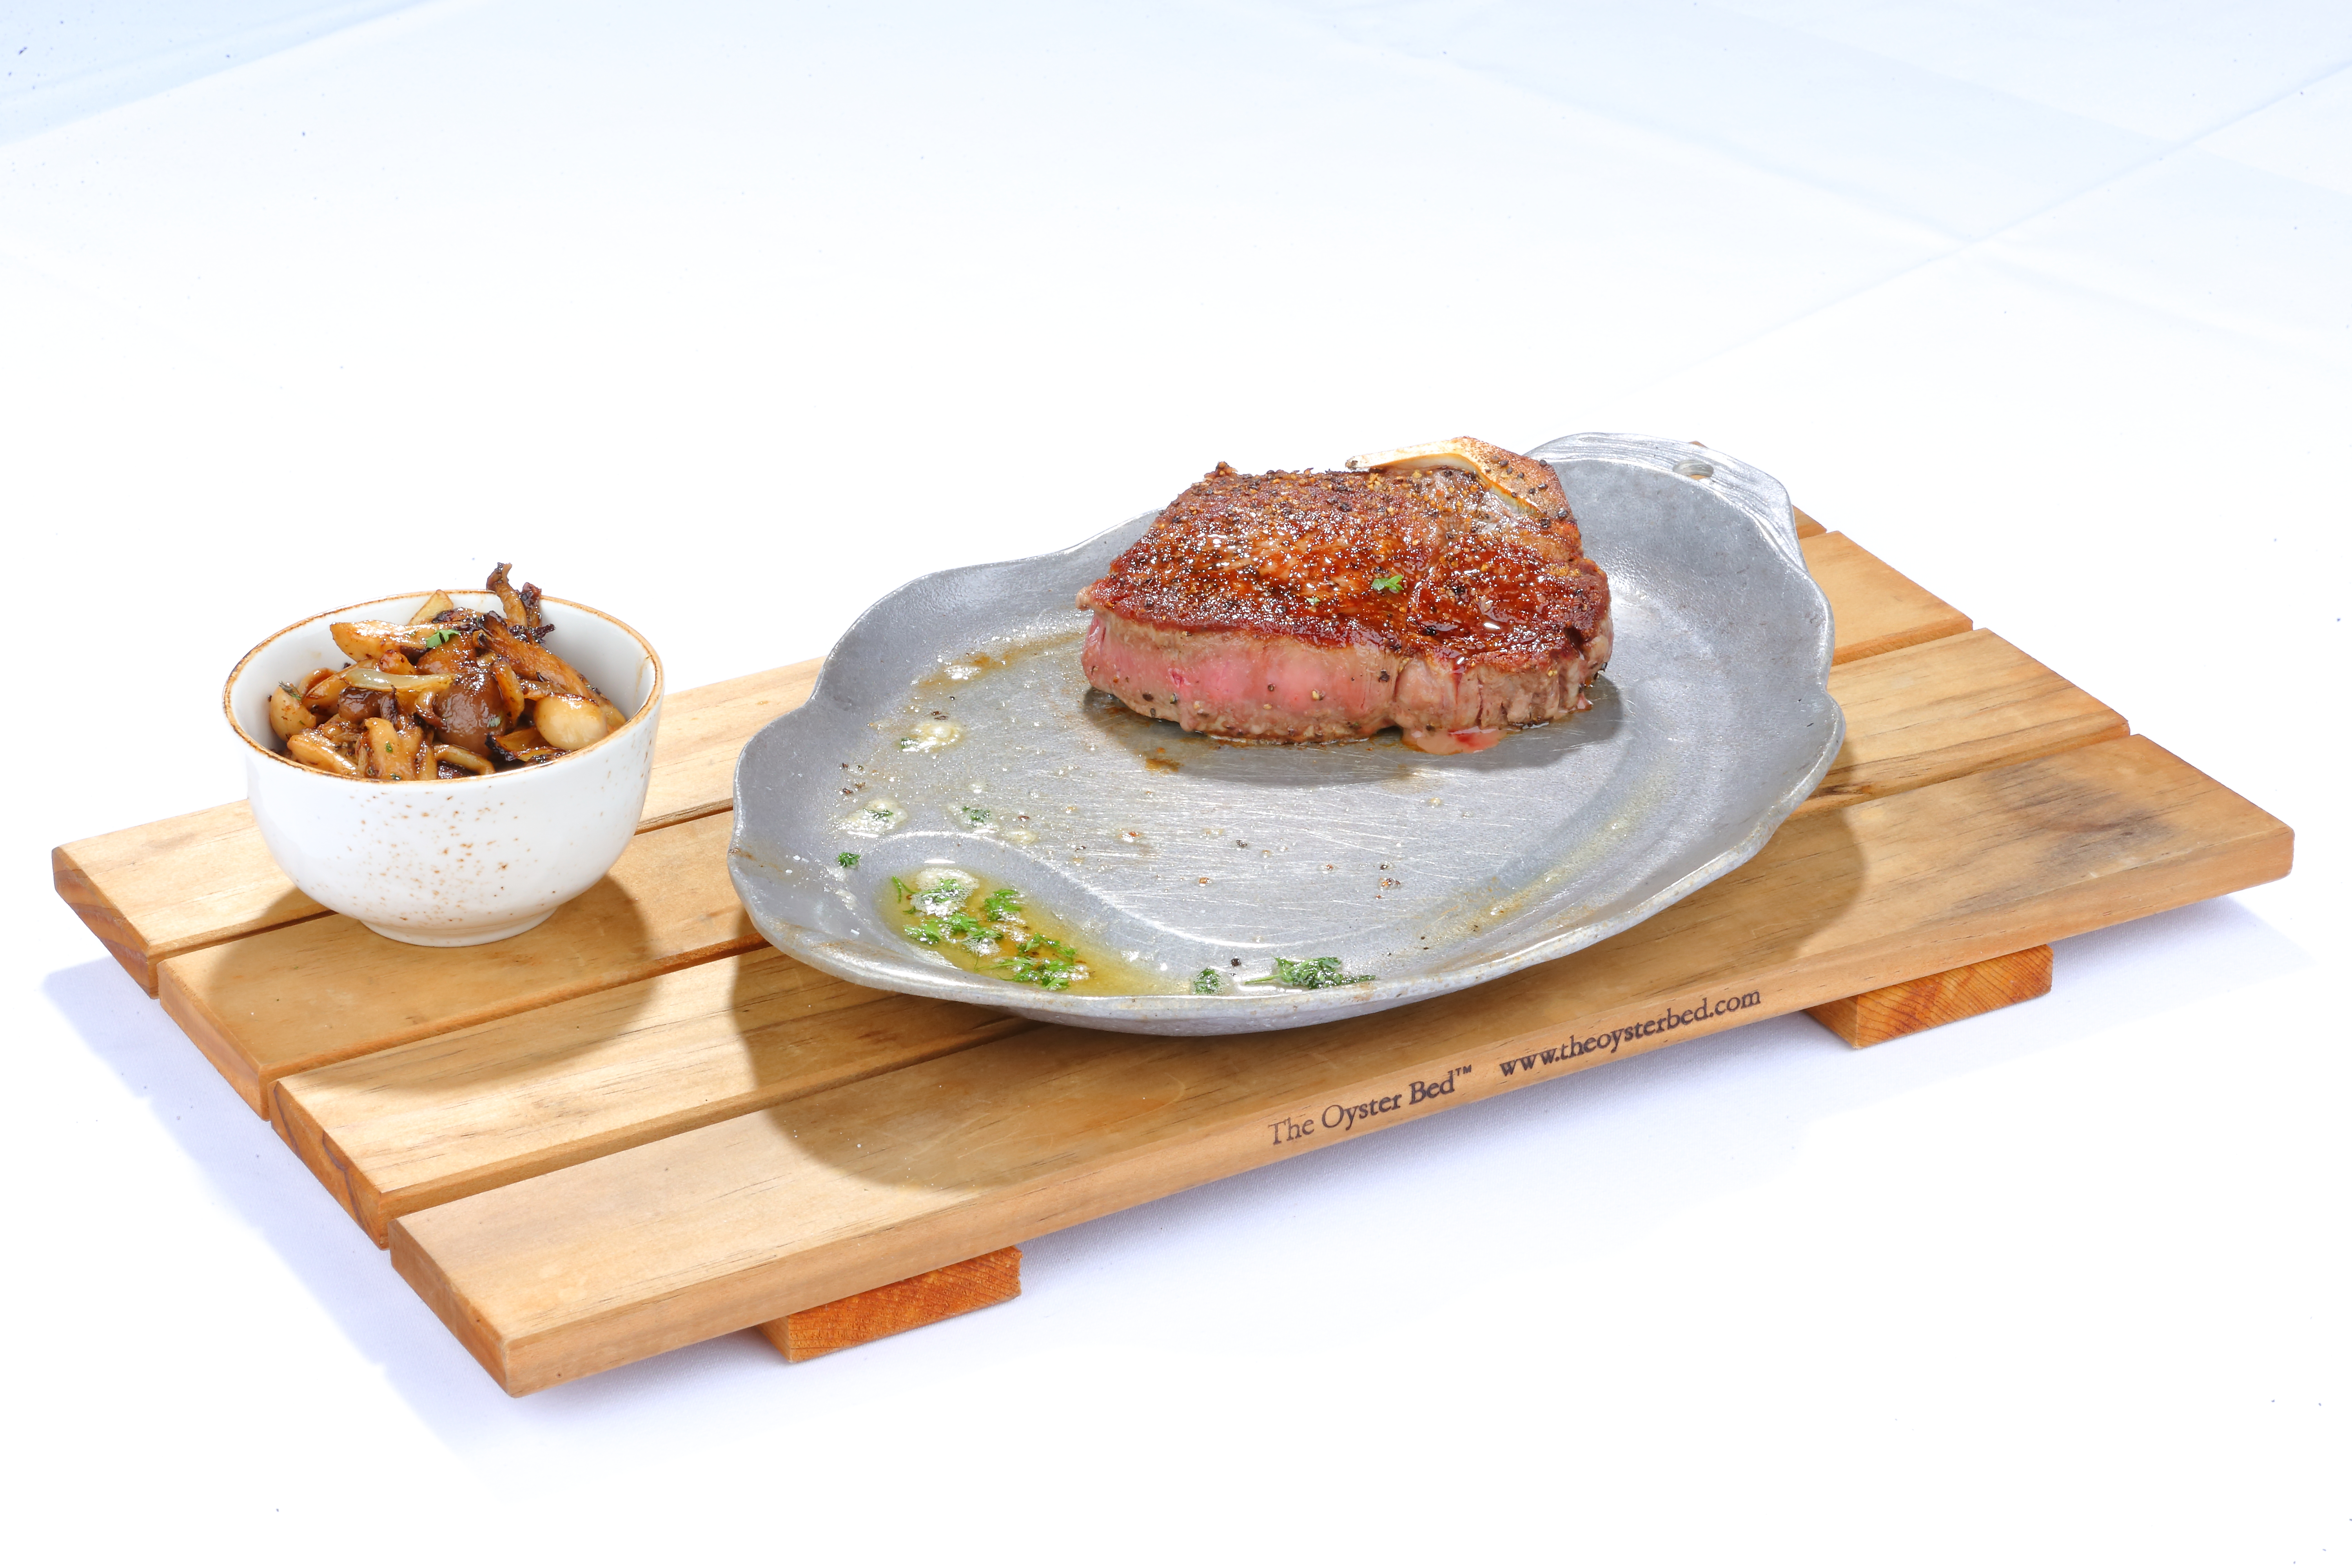 Plated Steak with Butter Sauce